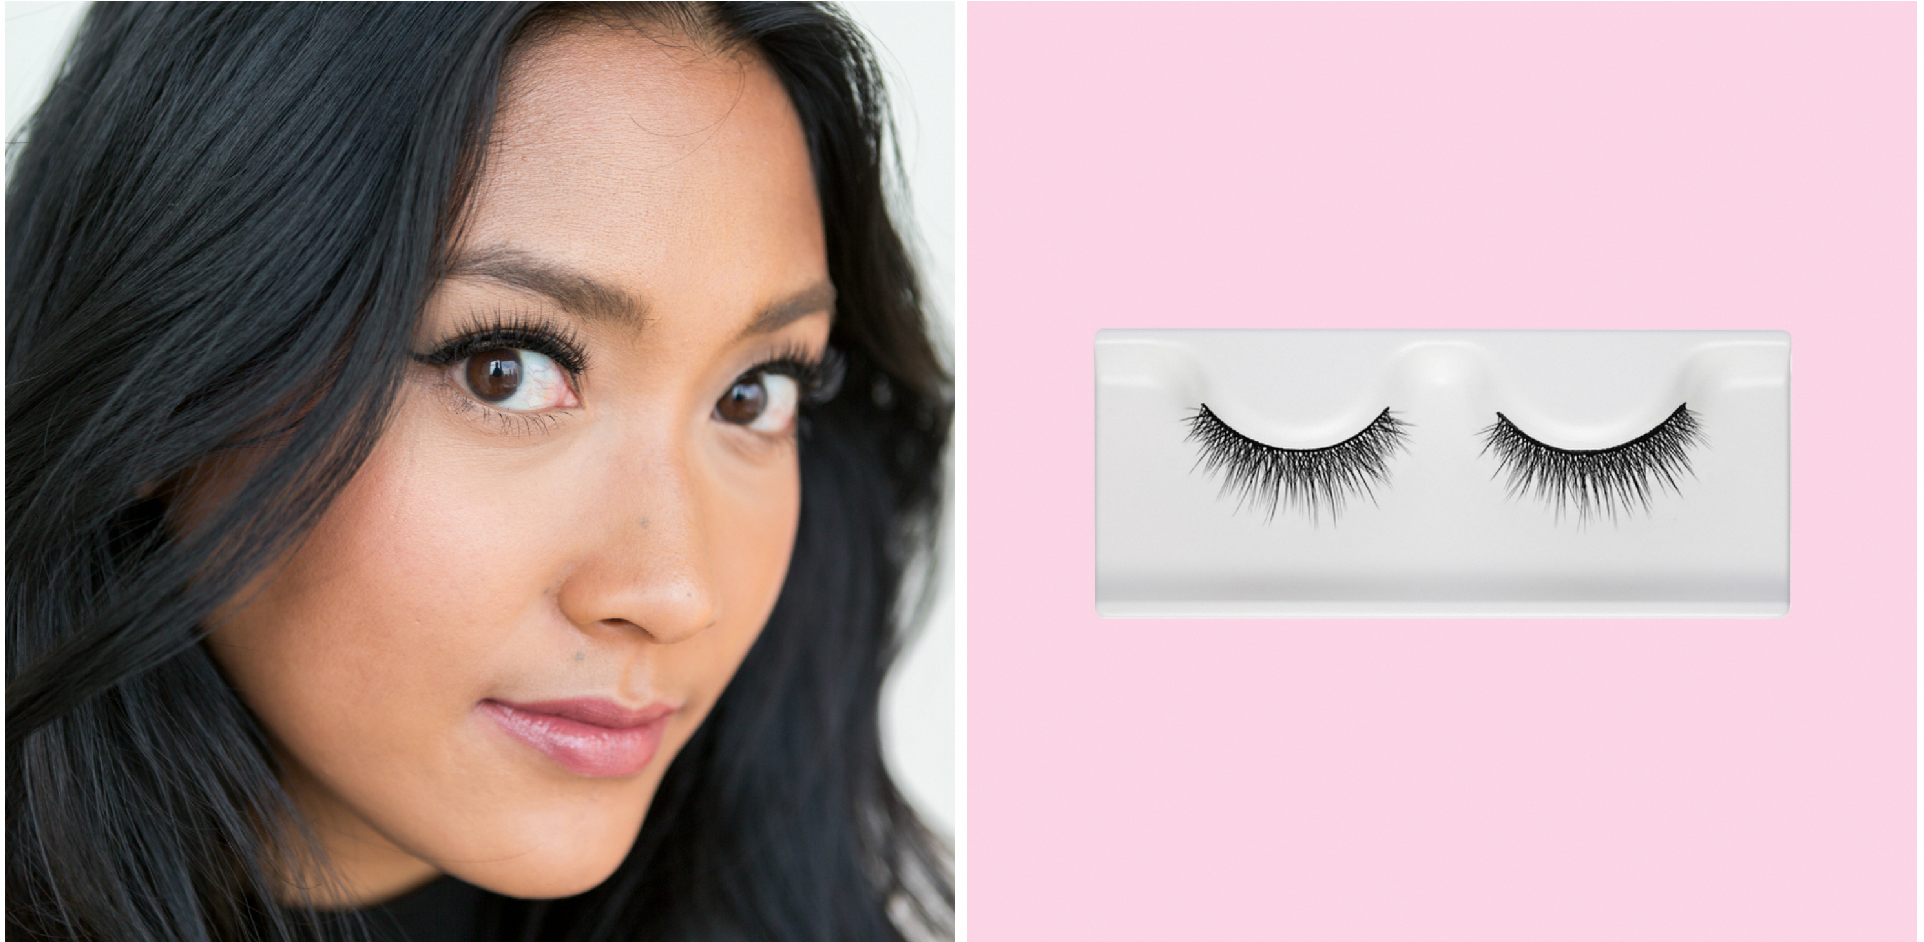 11431e46d0b The best false eyelashes — from wispy to full-on drama — according to  makeup artists and editors at Allure.